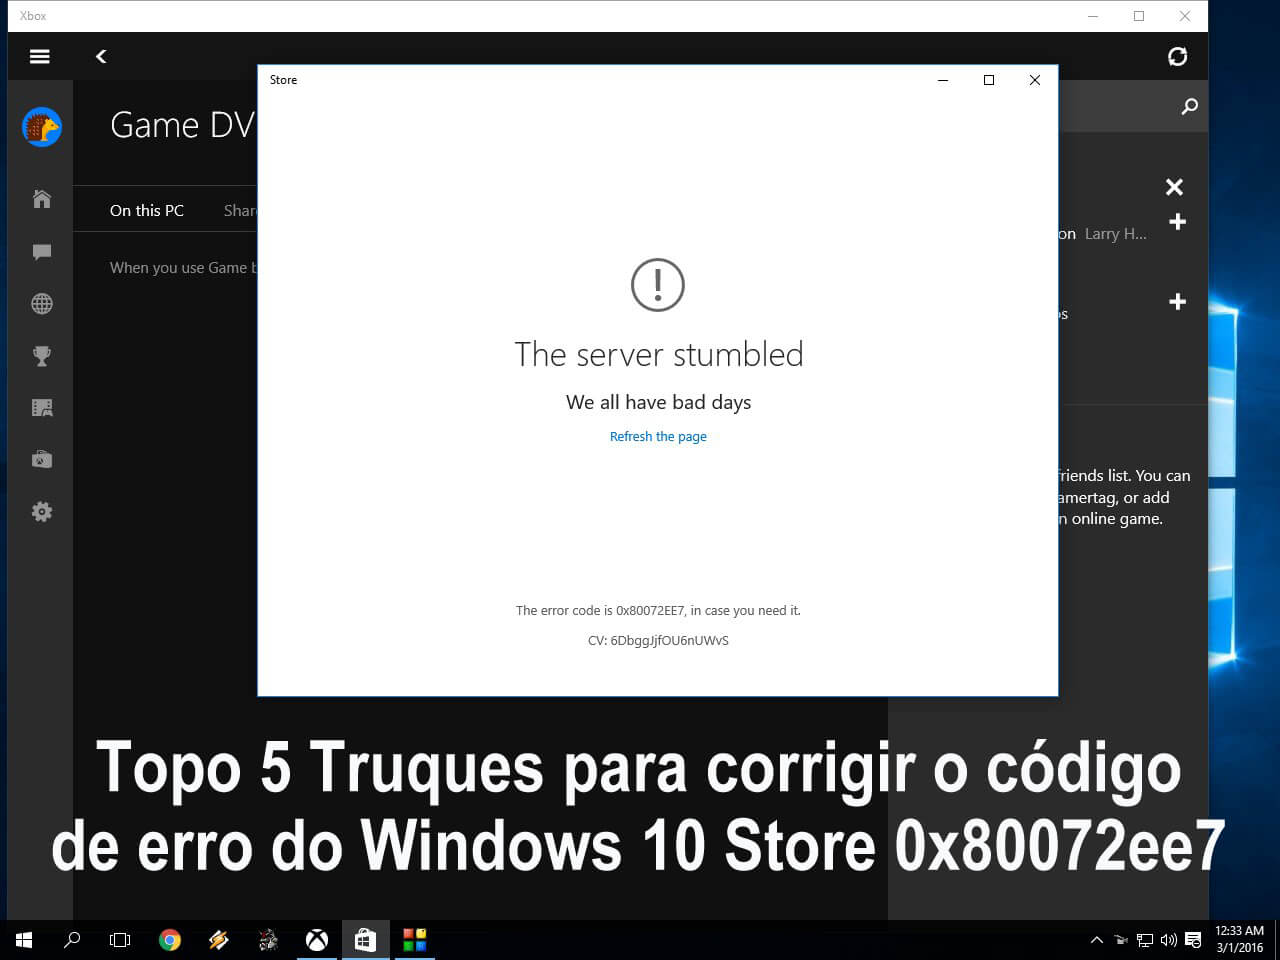 erro do Windows Store 0x80072ee7